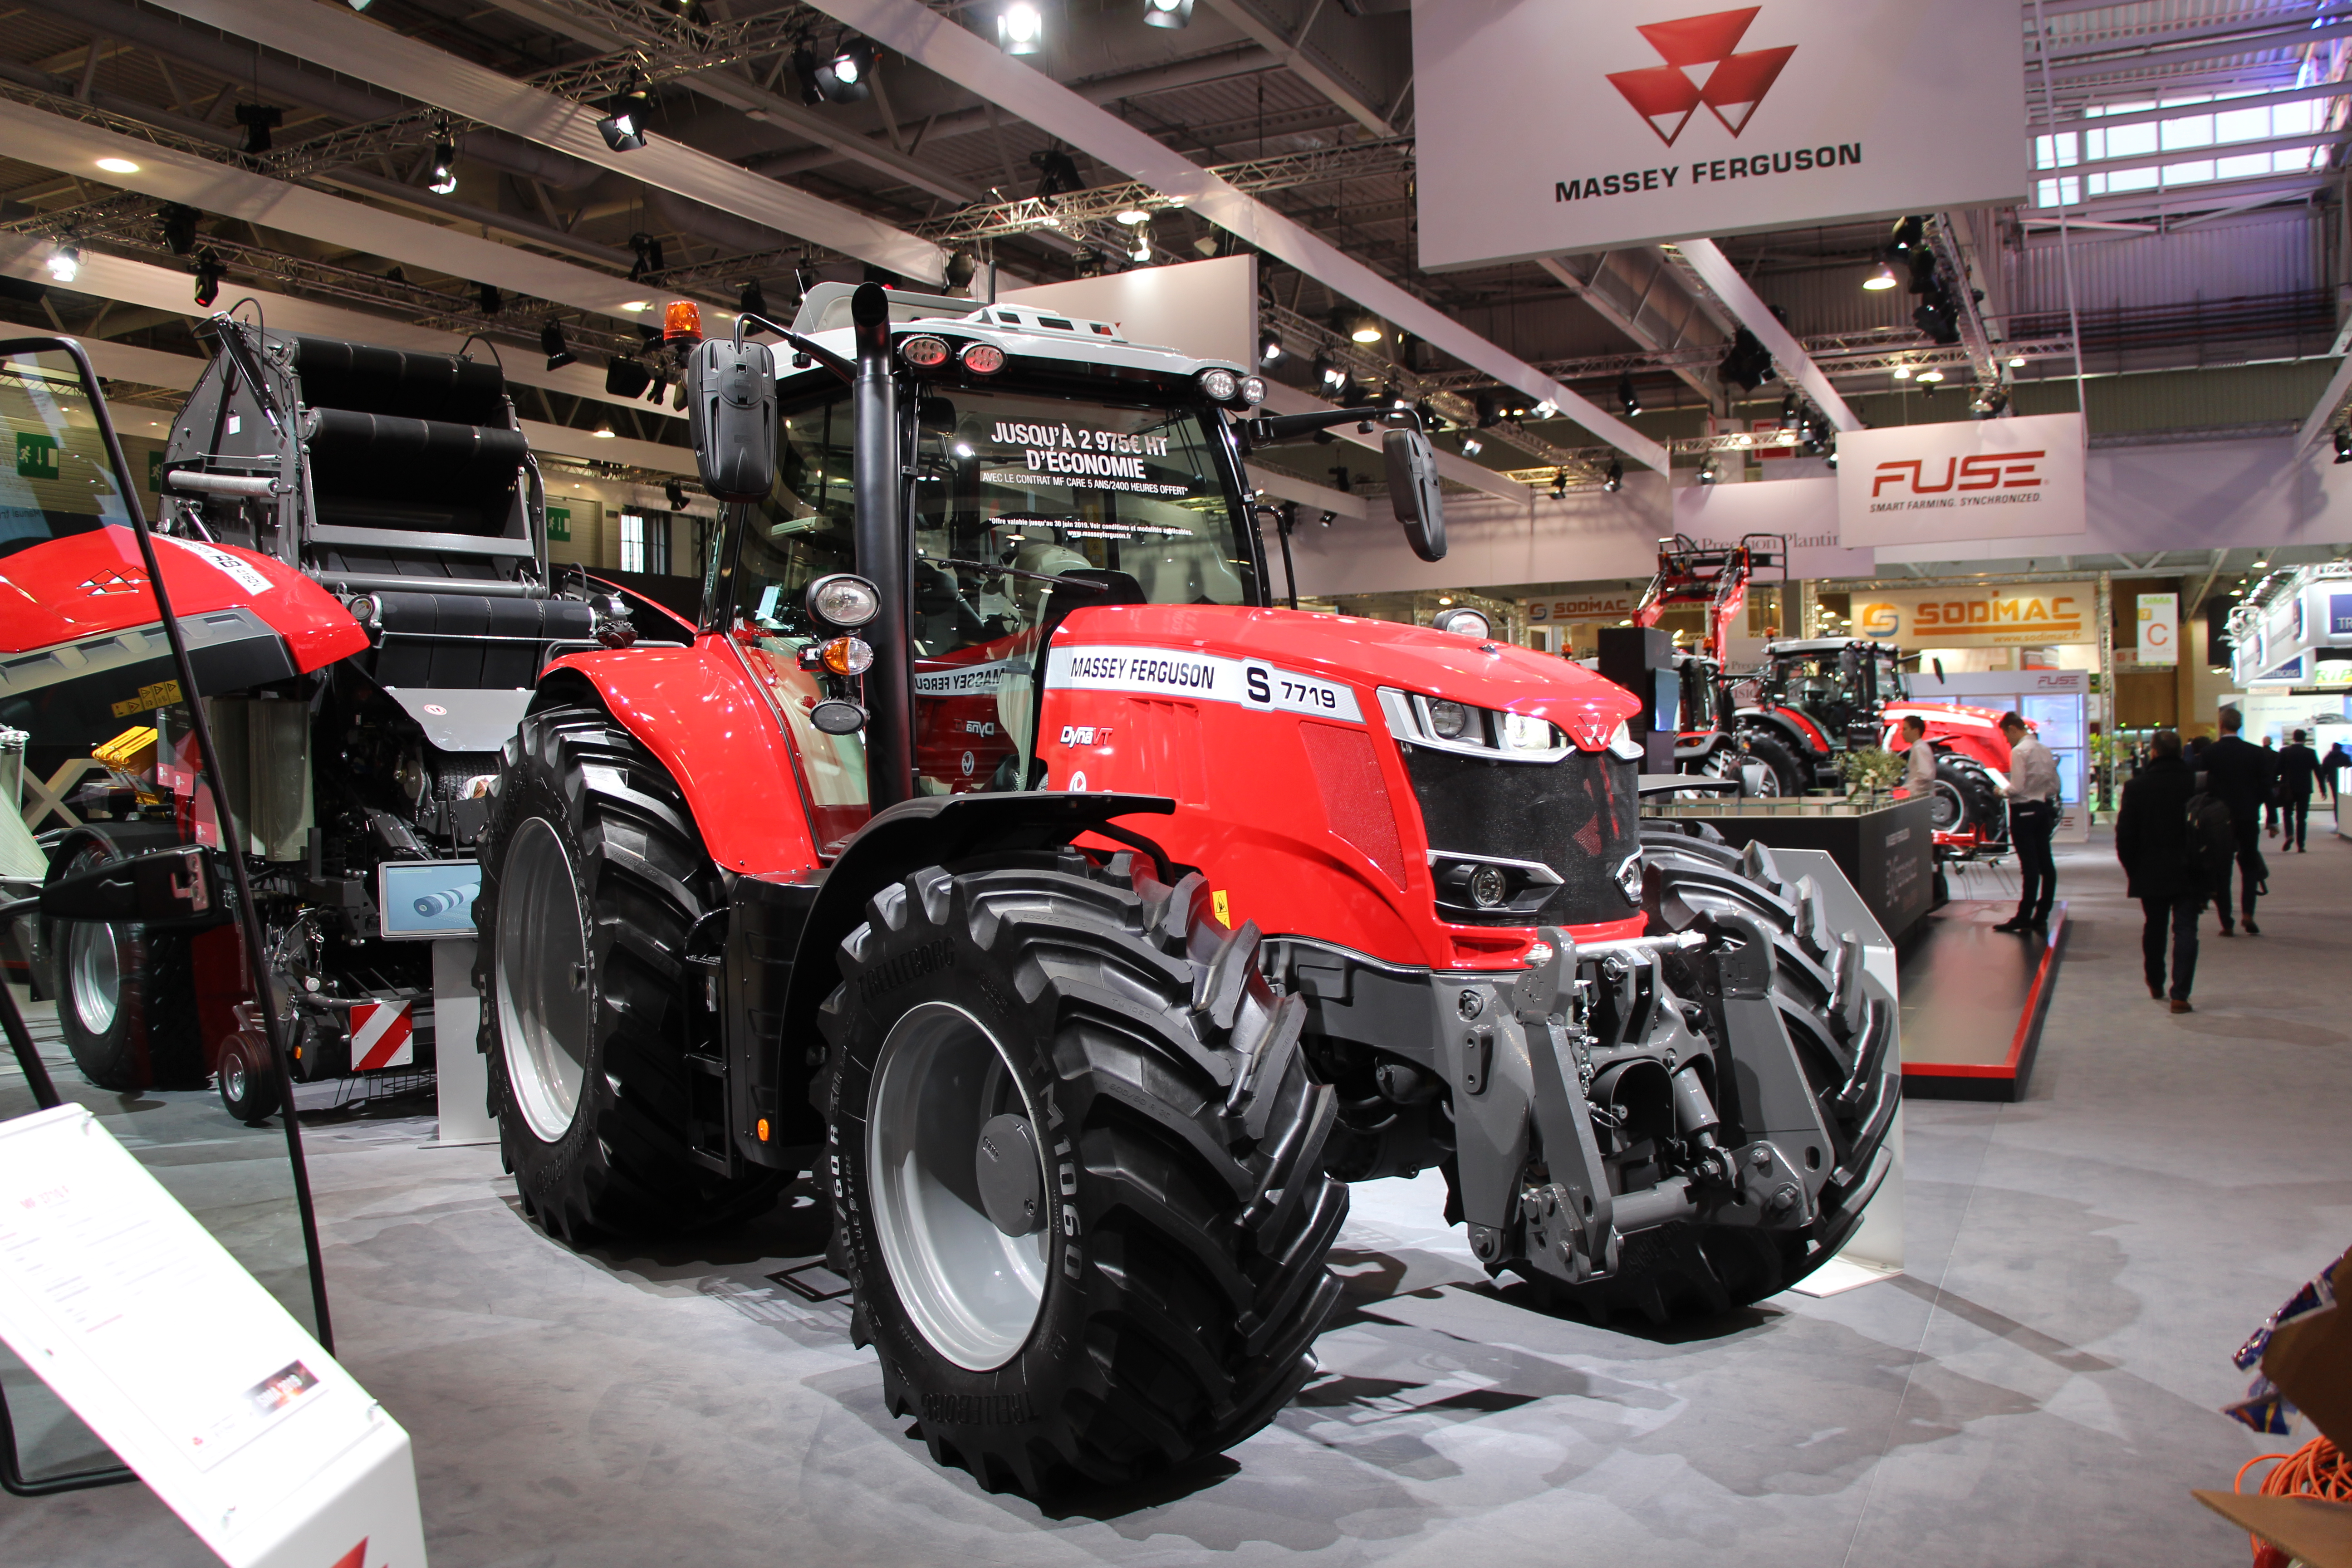 Massey Ferguson 7700 Stage V Réussir machinisme